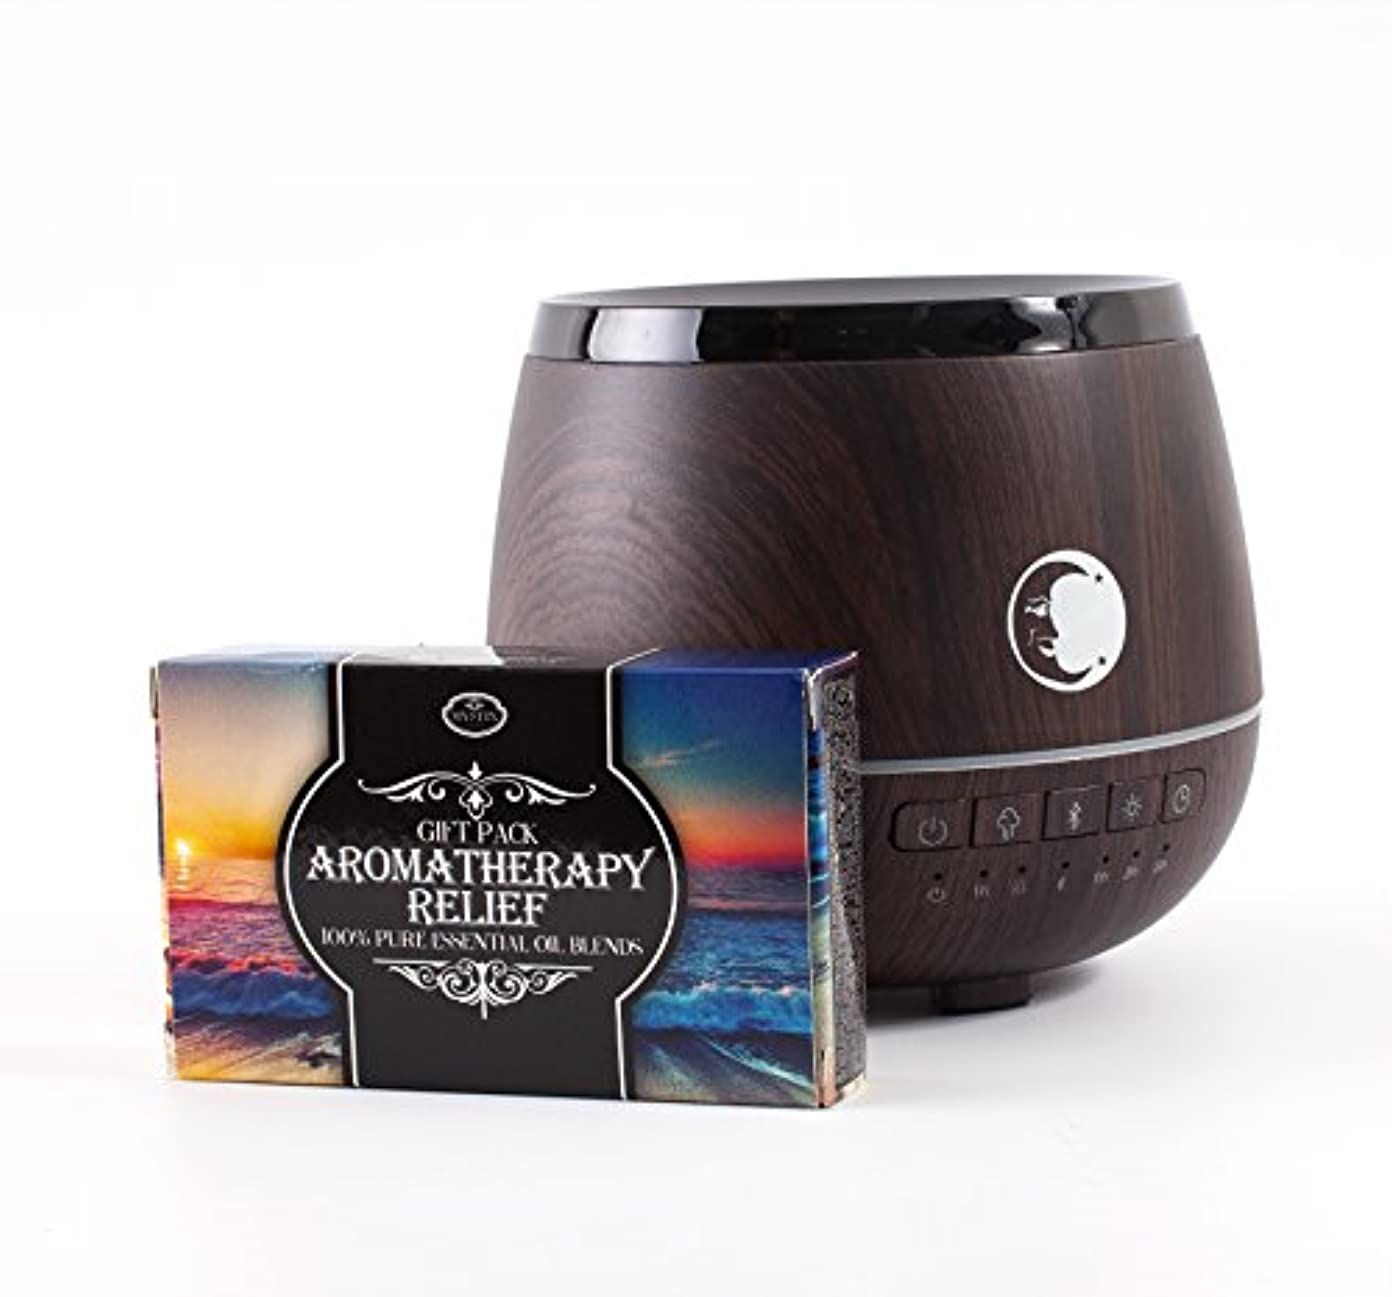 ぞっとするような櫛悲しいMystic Moments | Wood Effect Aromatherapy Oil Ultrasonic Diffuser With Bluetooth Speaker & LED Lights + Aromatherapy...